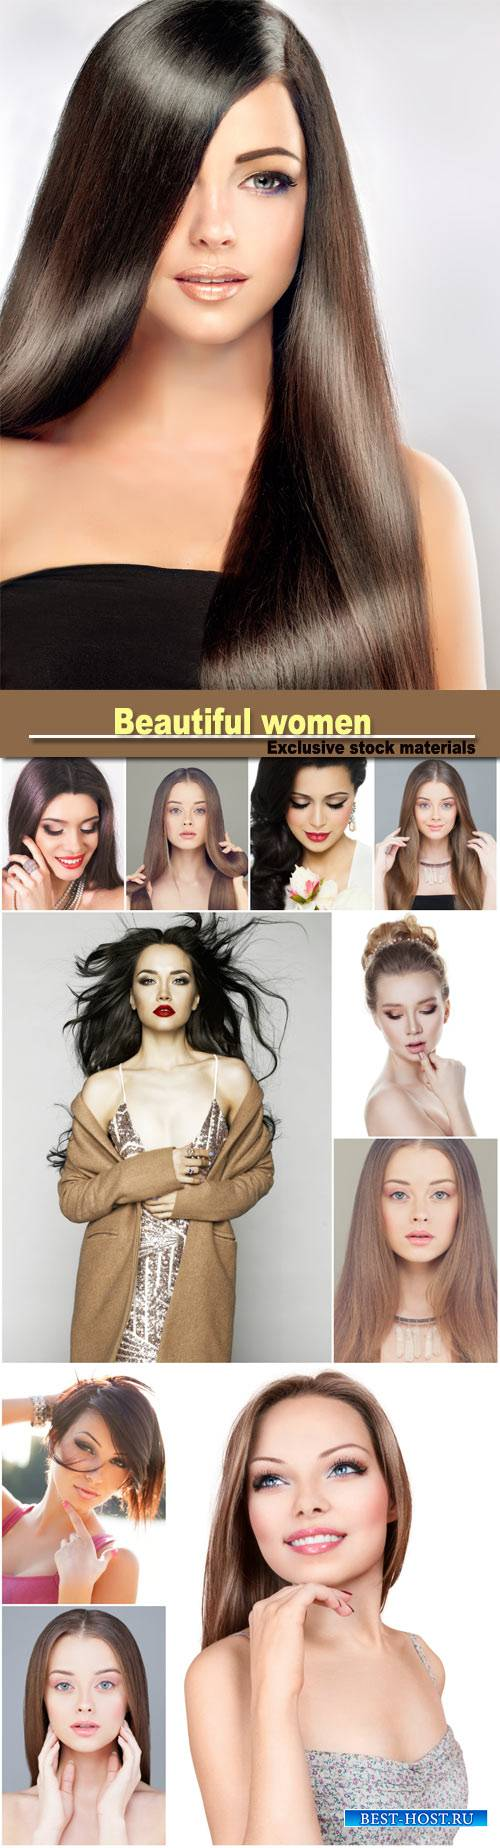 Beautiful women with different hairstyles, make-up